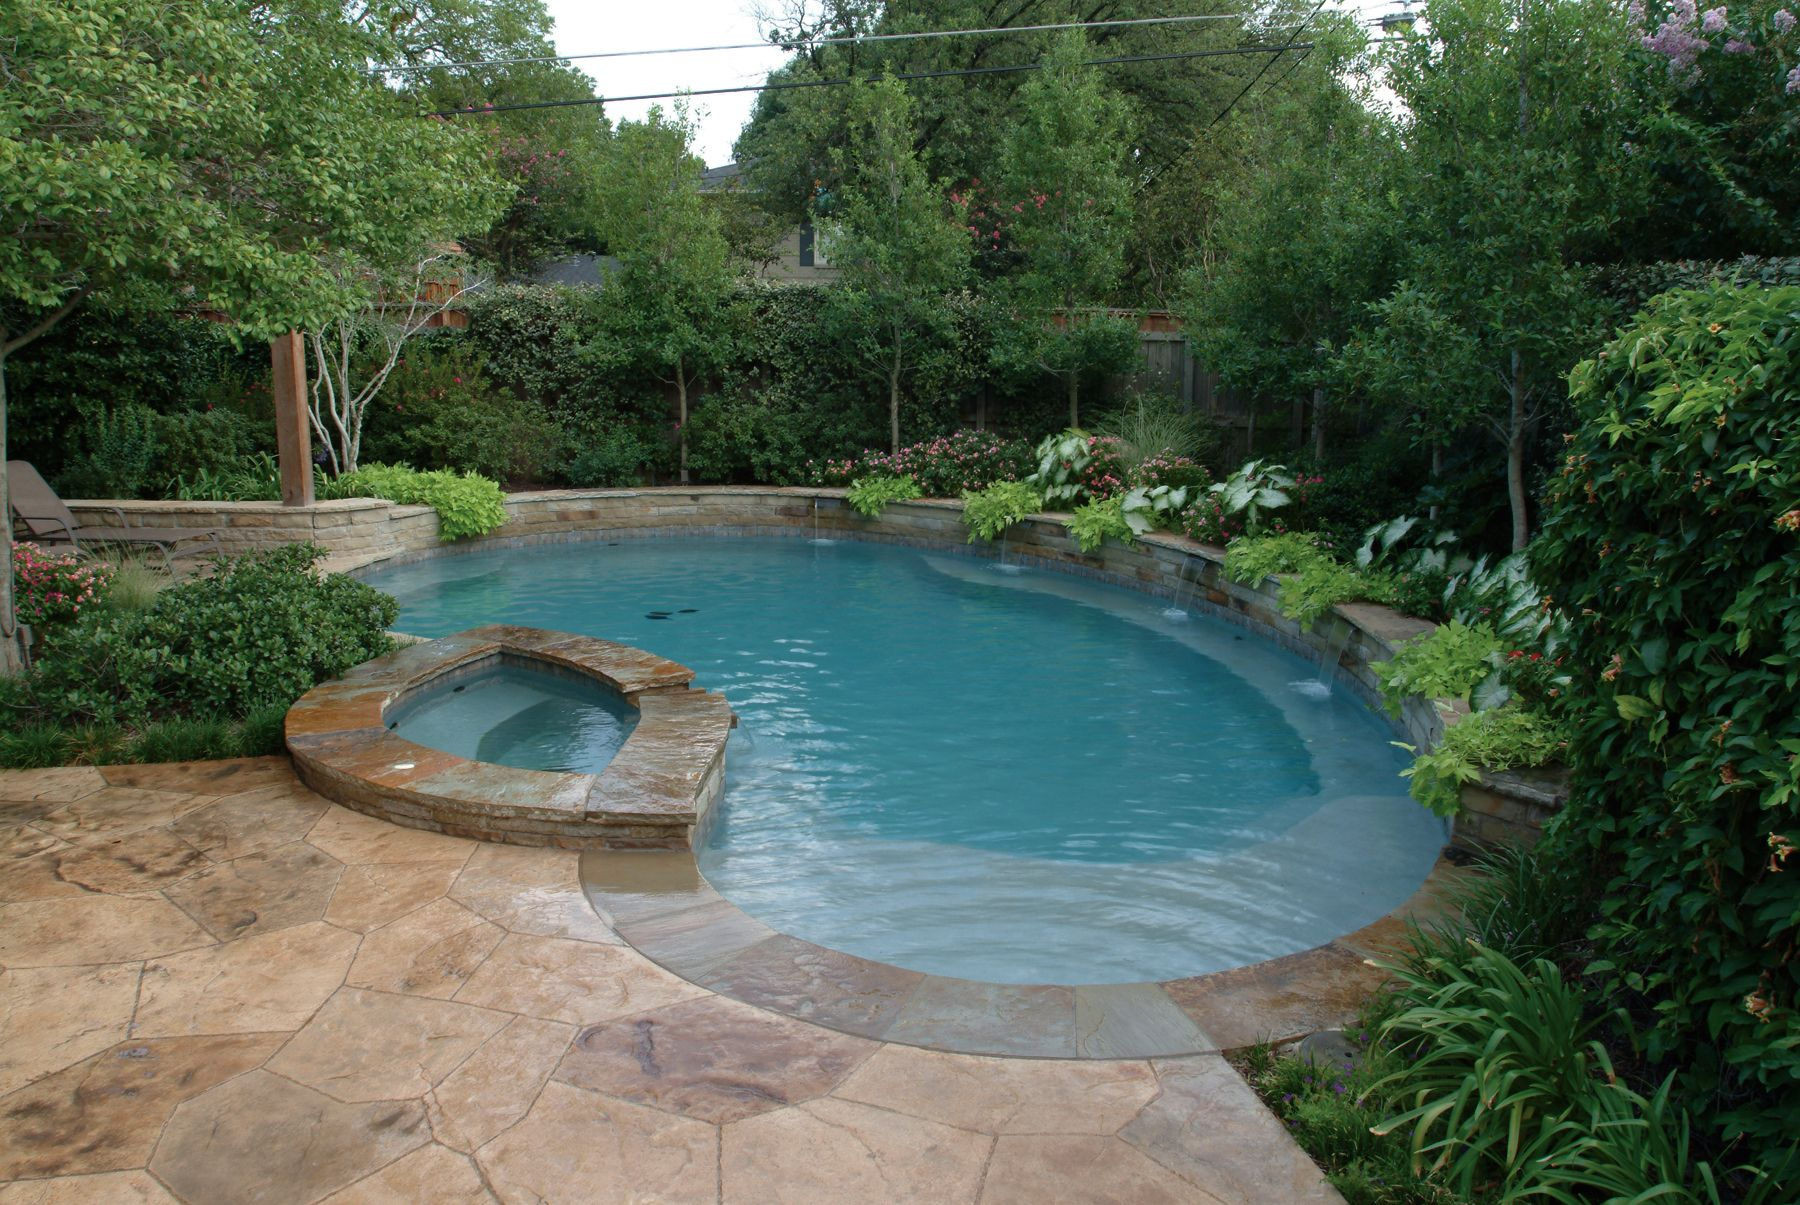 Inground Pool Patio Designs inground pool designs for small backyards backyard design ideas Small Pool With Waterfall Designs Free Form Pool With Lush Design Pool Exotic Pools Small